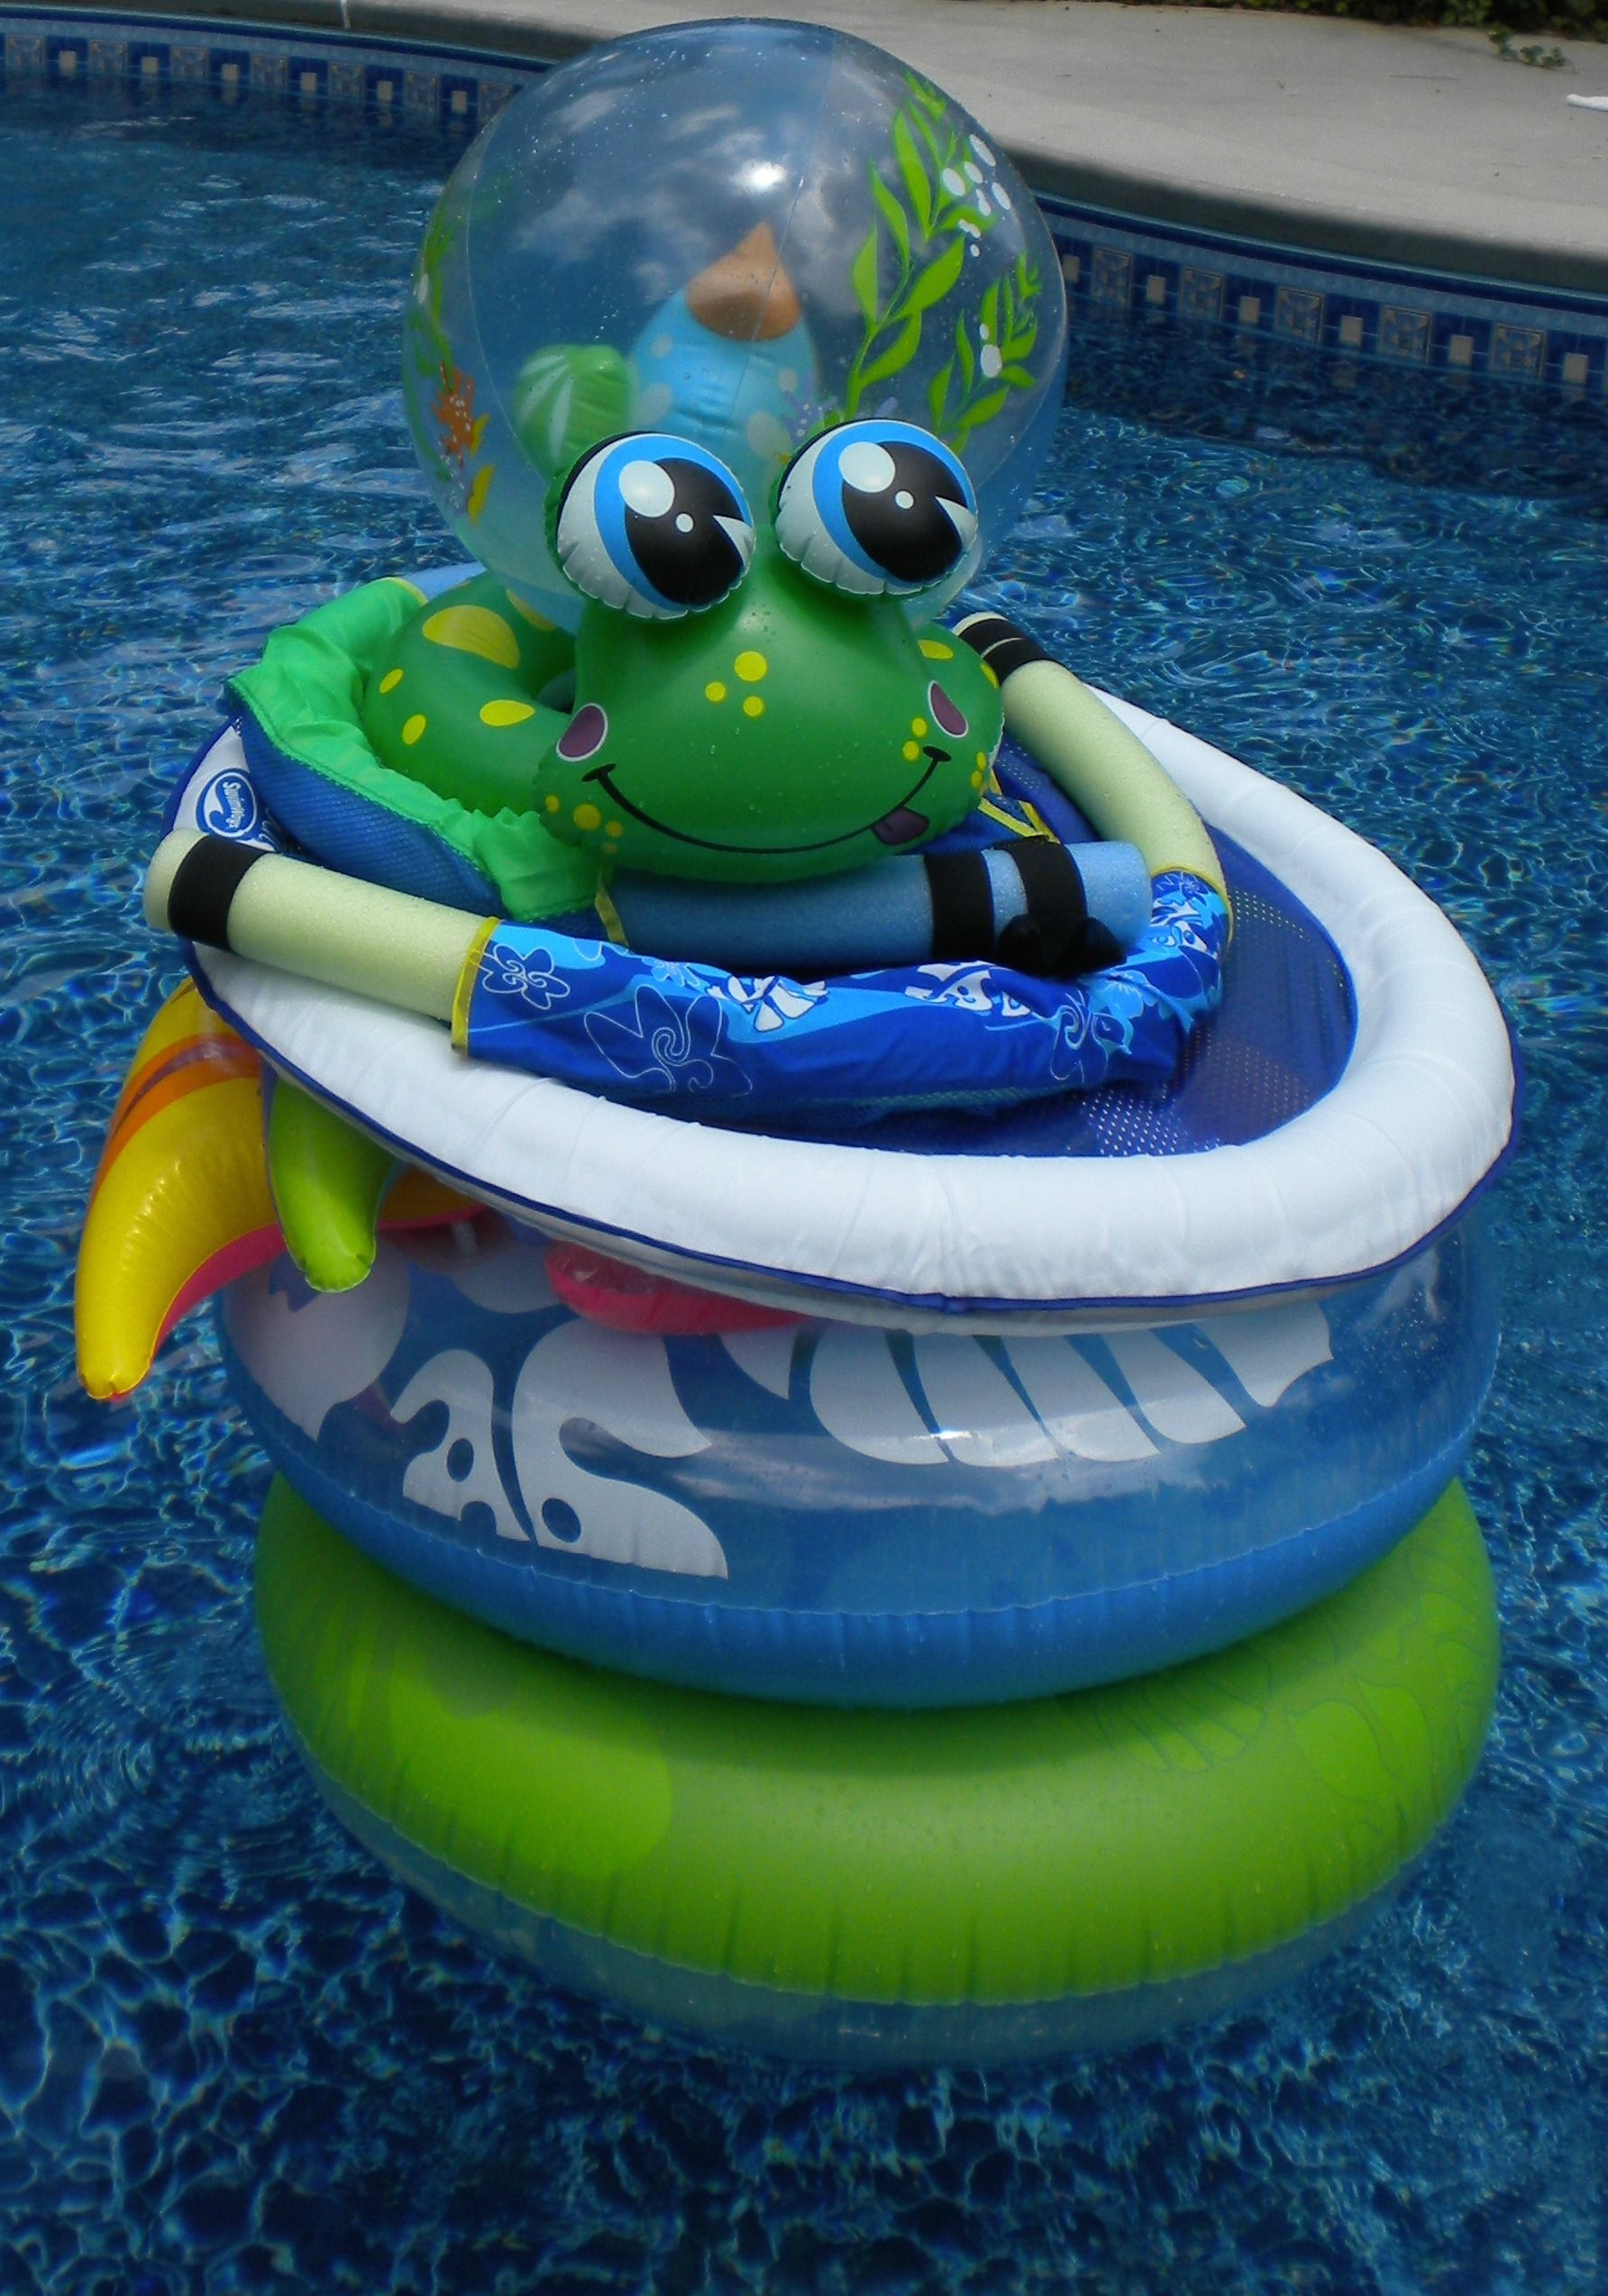 Inflatable pool toys and floats offer something for everyone